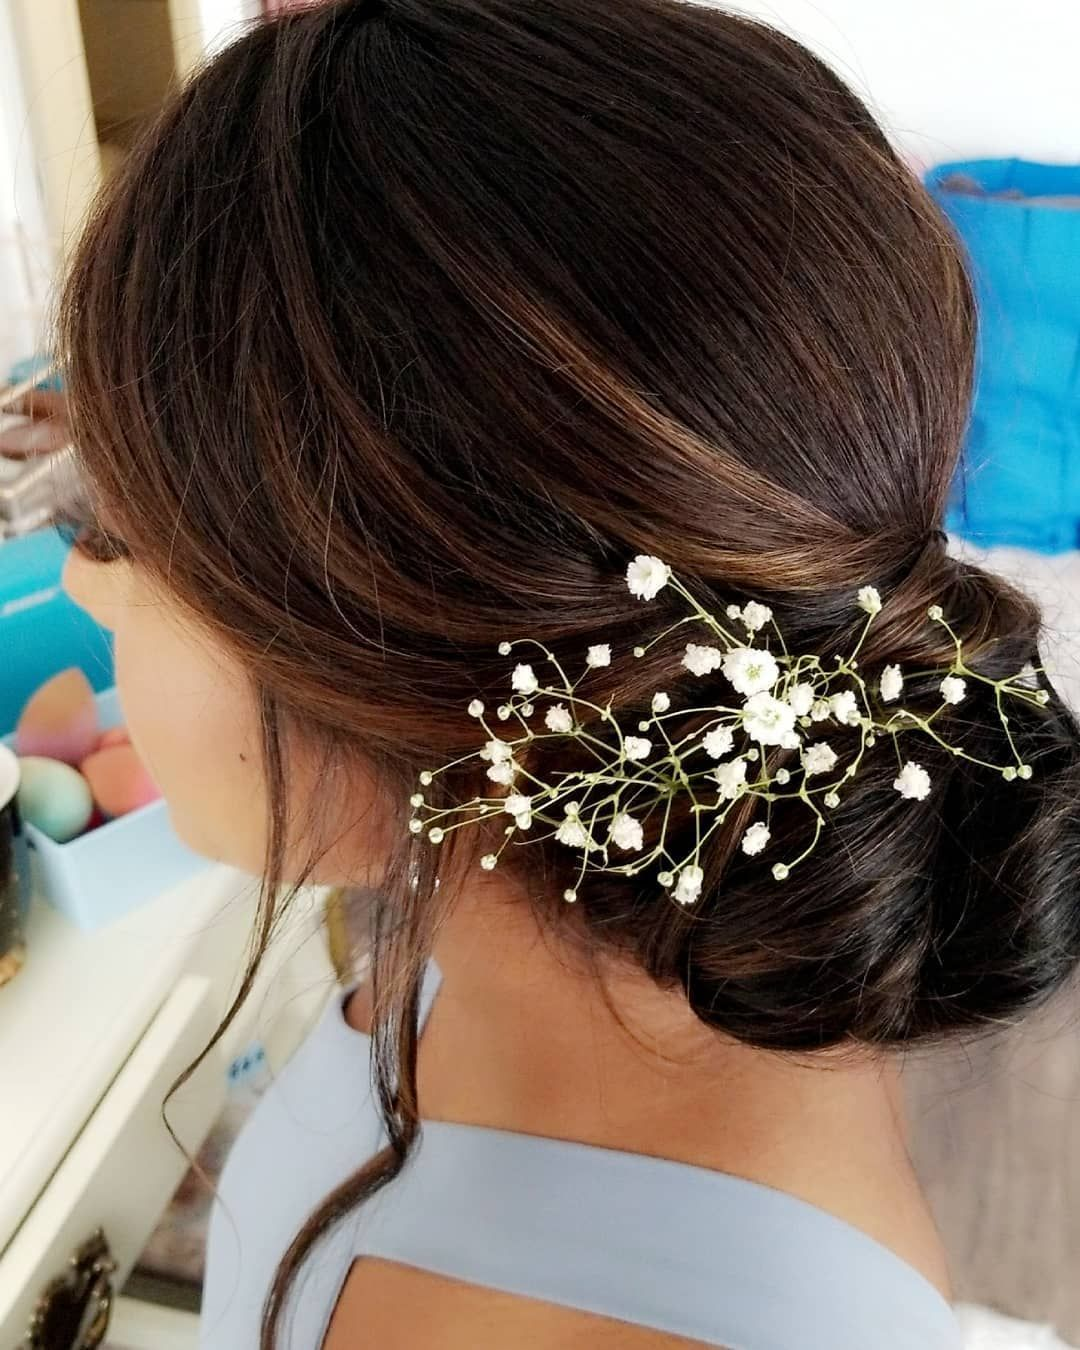 Bridesmaid #s #hairstyle #- #low #side #bun...so #my #client #was #in #love...client #also #happens #to #be #my #seestah #__darrin #bridesmaidshair #babysbreath #lowsidebun #hairstyles #pinterestworthy #pinterest #Hairstyles #lowsidebuns Bridesmaid #s #hairstyle #- #low #side #bun...so #my #client #was #in #love...client #also #happens #to #be #my #seestah #__darrin #bridesmaidshair #babysbreath #lowsidebun #hairstyles #pinterestworthy #pinterest #Hairstyles #lowsidebuns